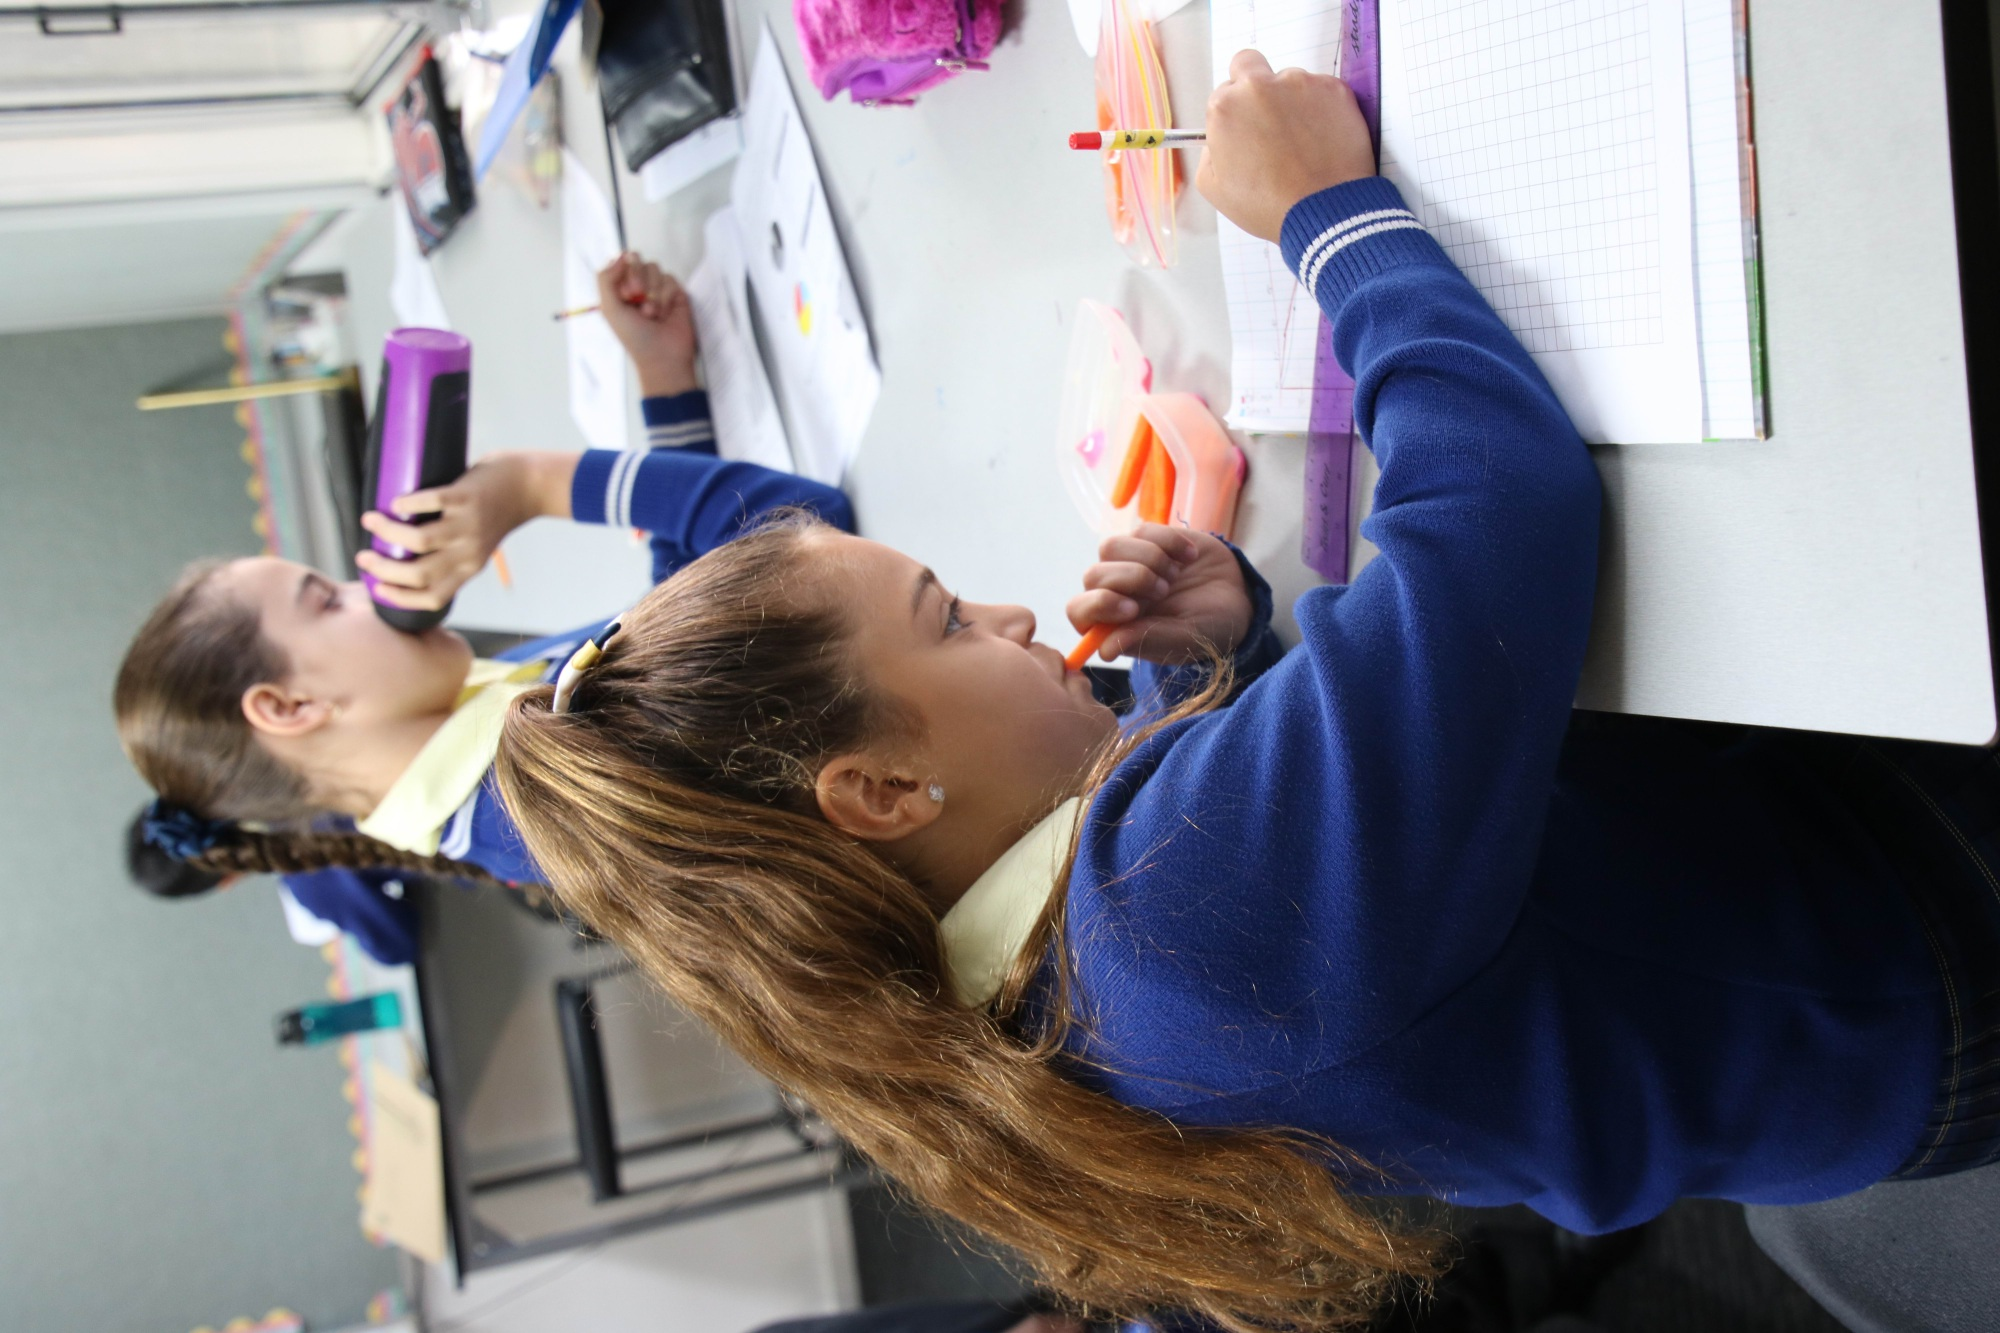 Year Five students Alessia Andritsos and Persia Colely nibble during class.